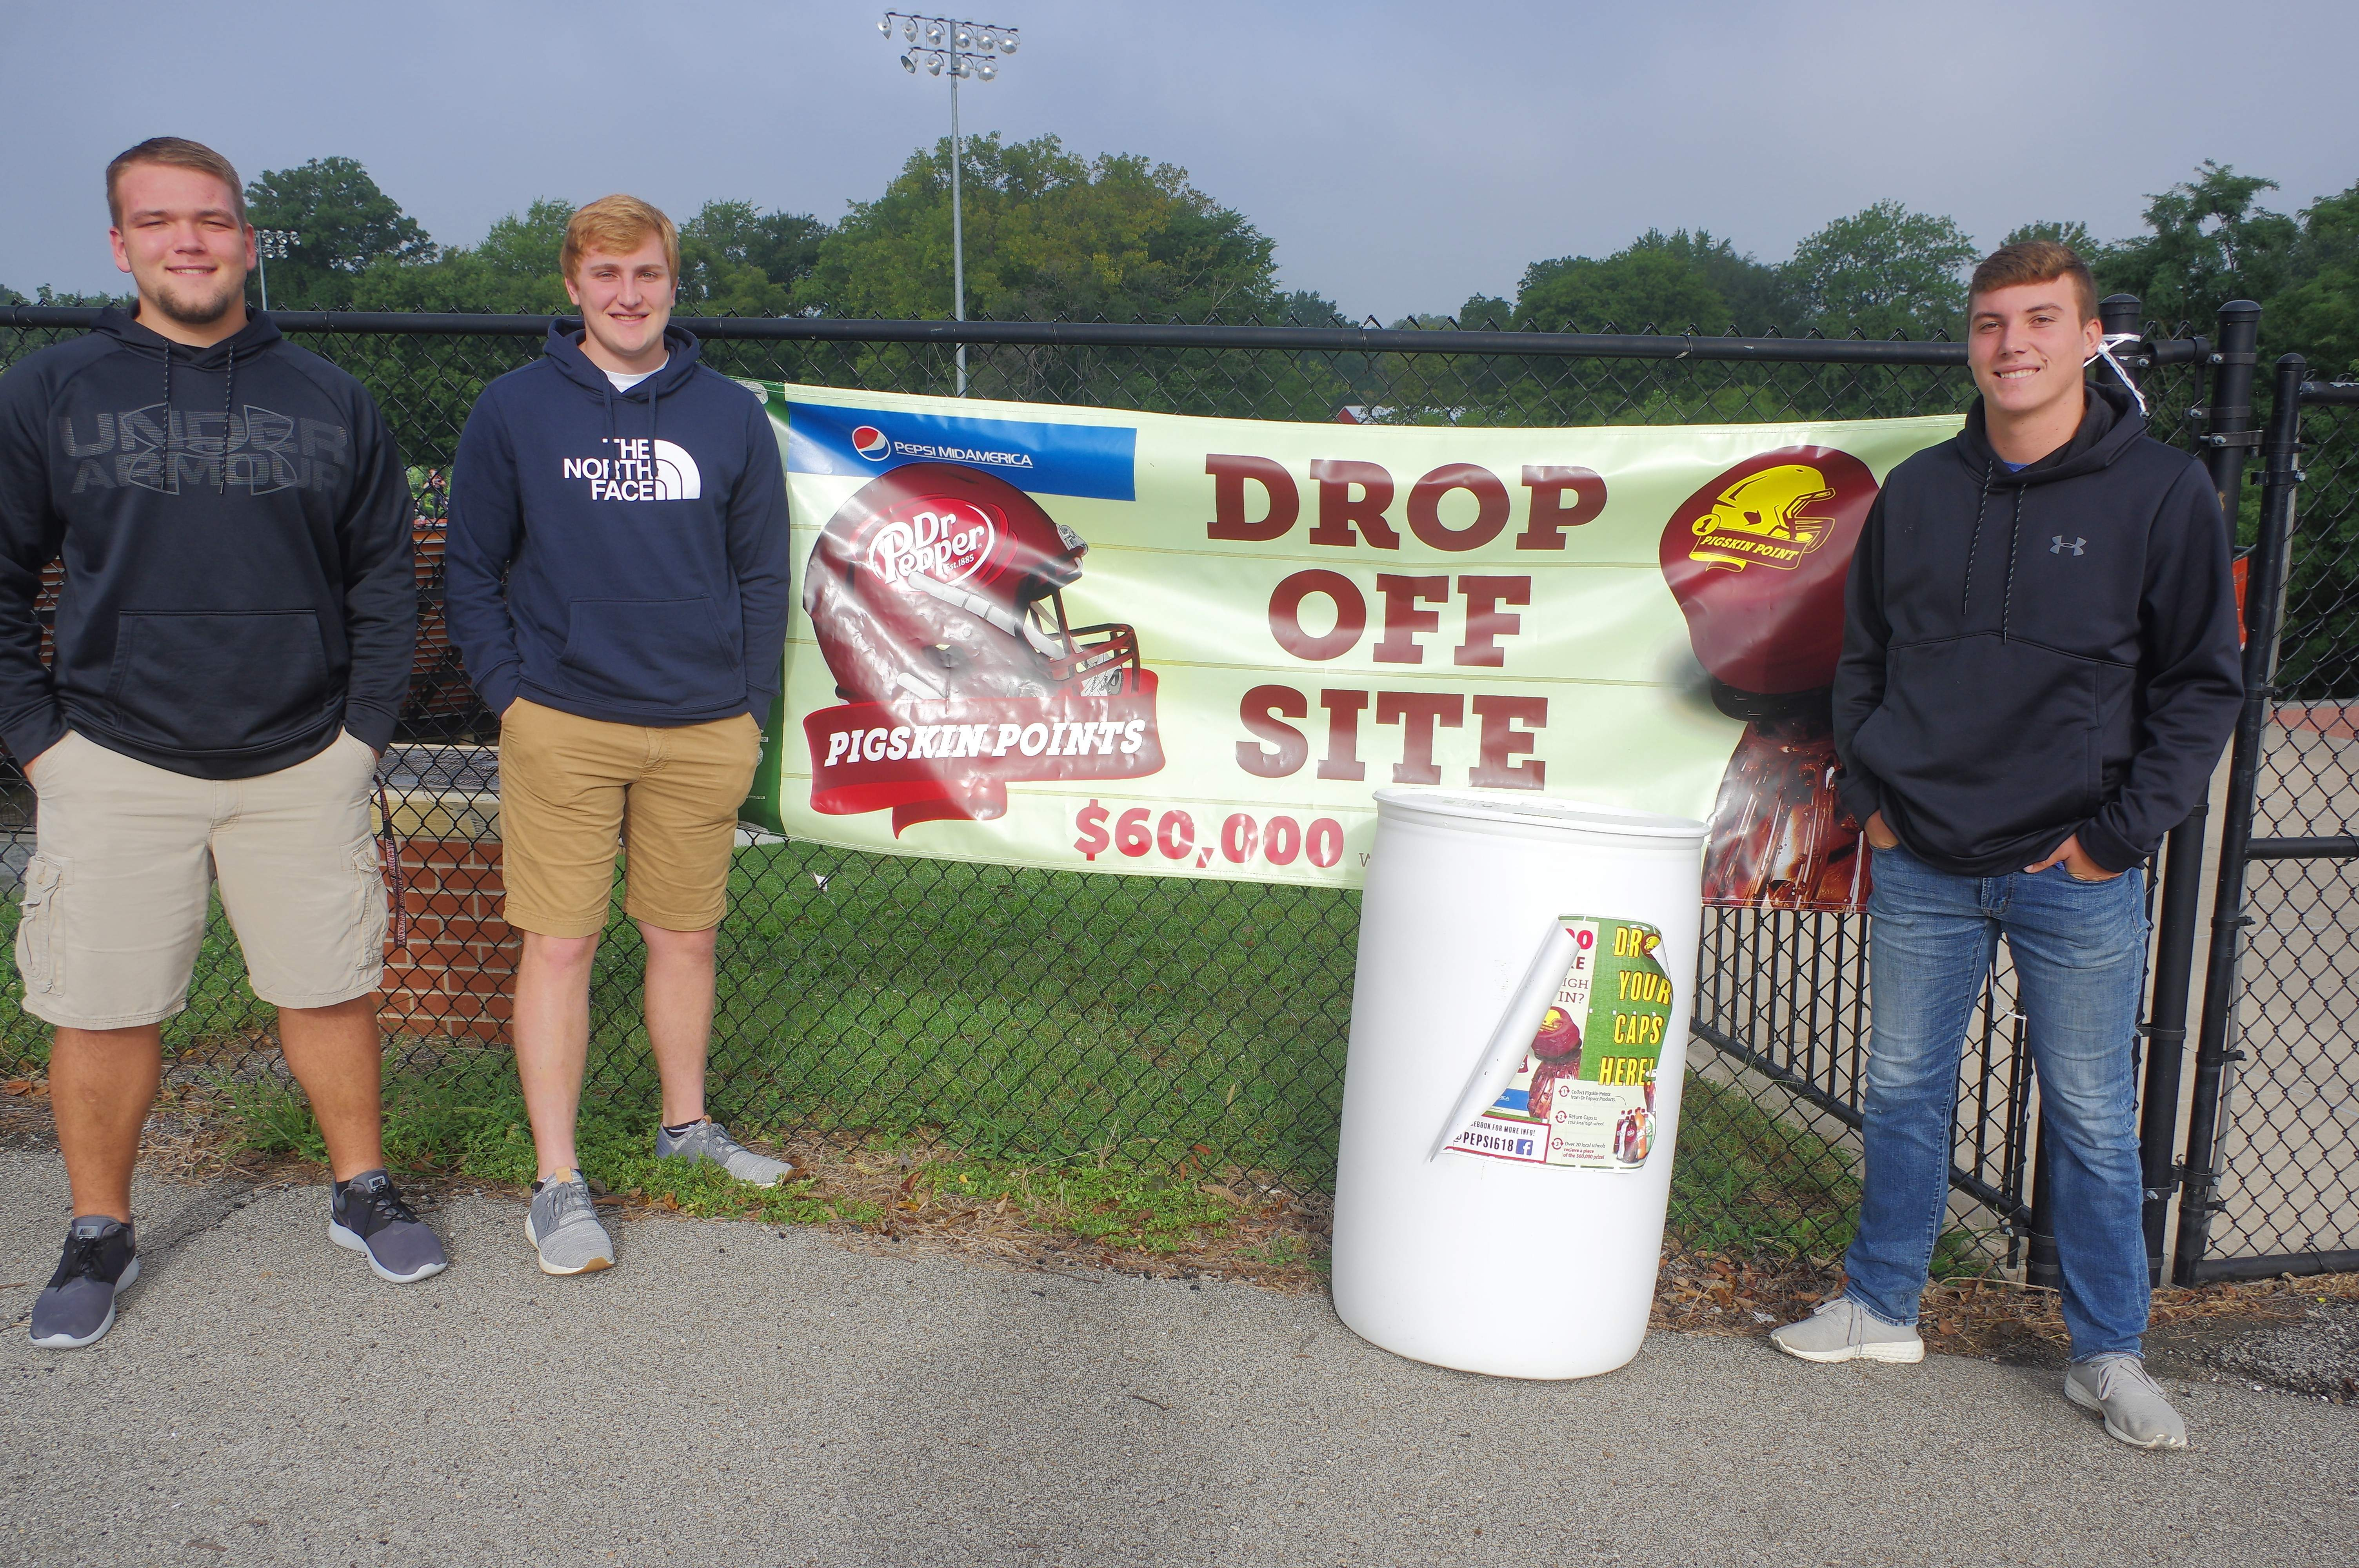 Chester High School Football players, from left, Chase Colvis, Drake Bollman and Nick Meyer stand by the collection barrel for the 2018 Pepsi MidAmerica Pigskin Points contest at the entrance to W.O. Smith Field, in which Chester High School is competing.